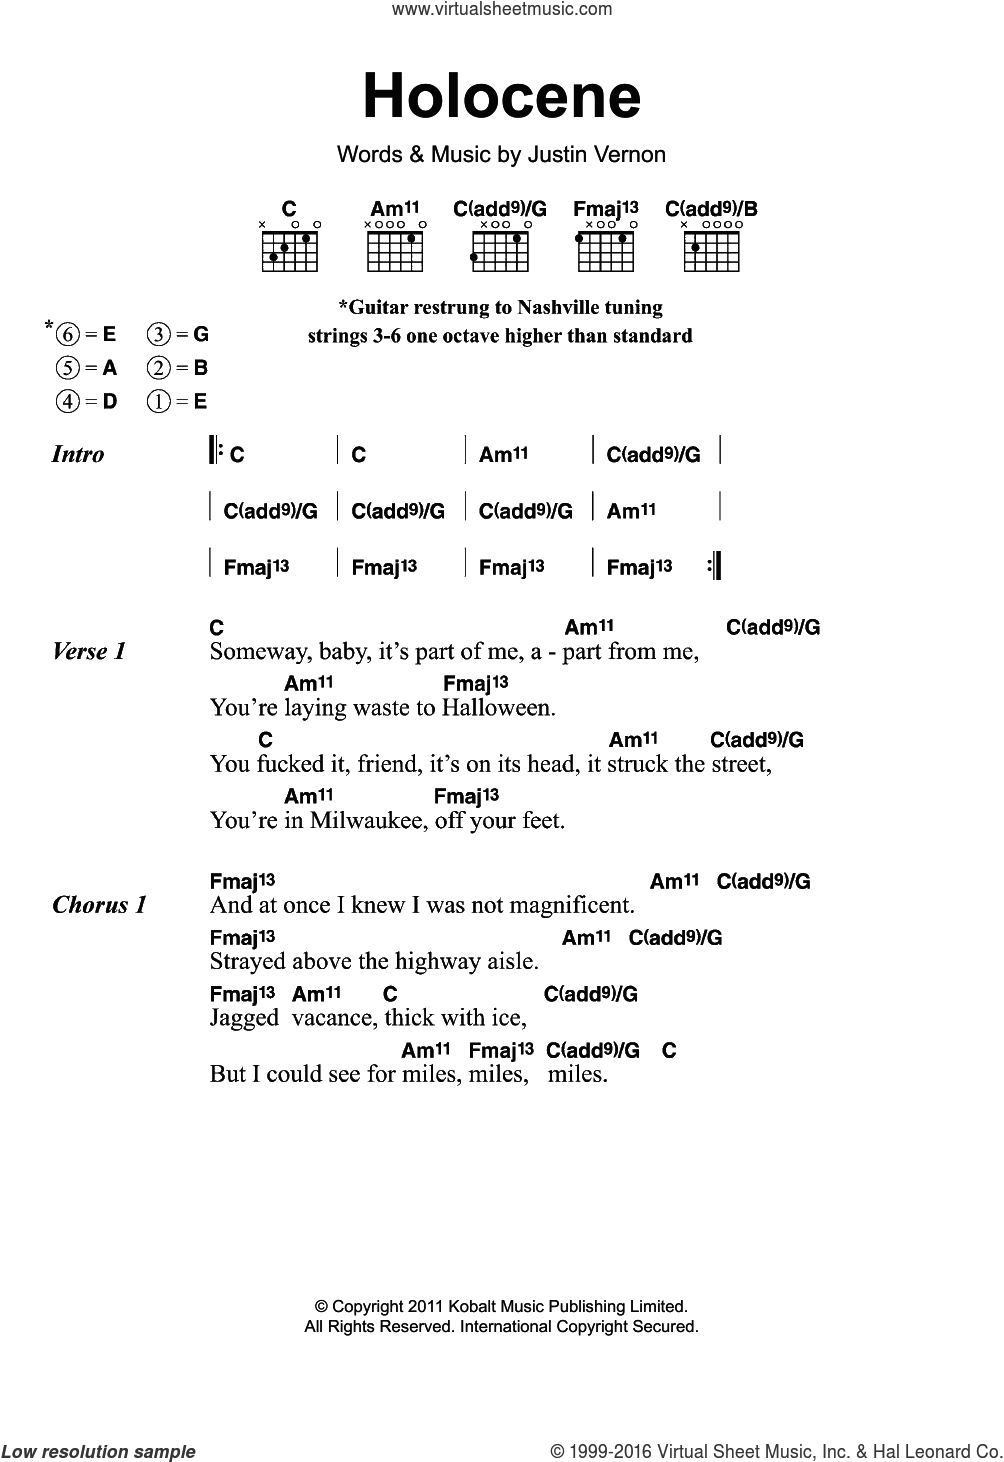 Iver Holocene Sheet Music For Guitar Chords Pdf